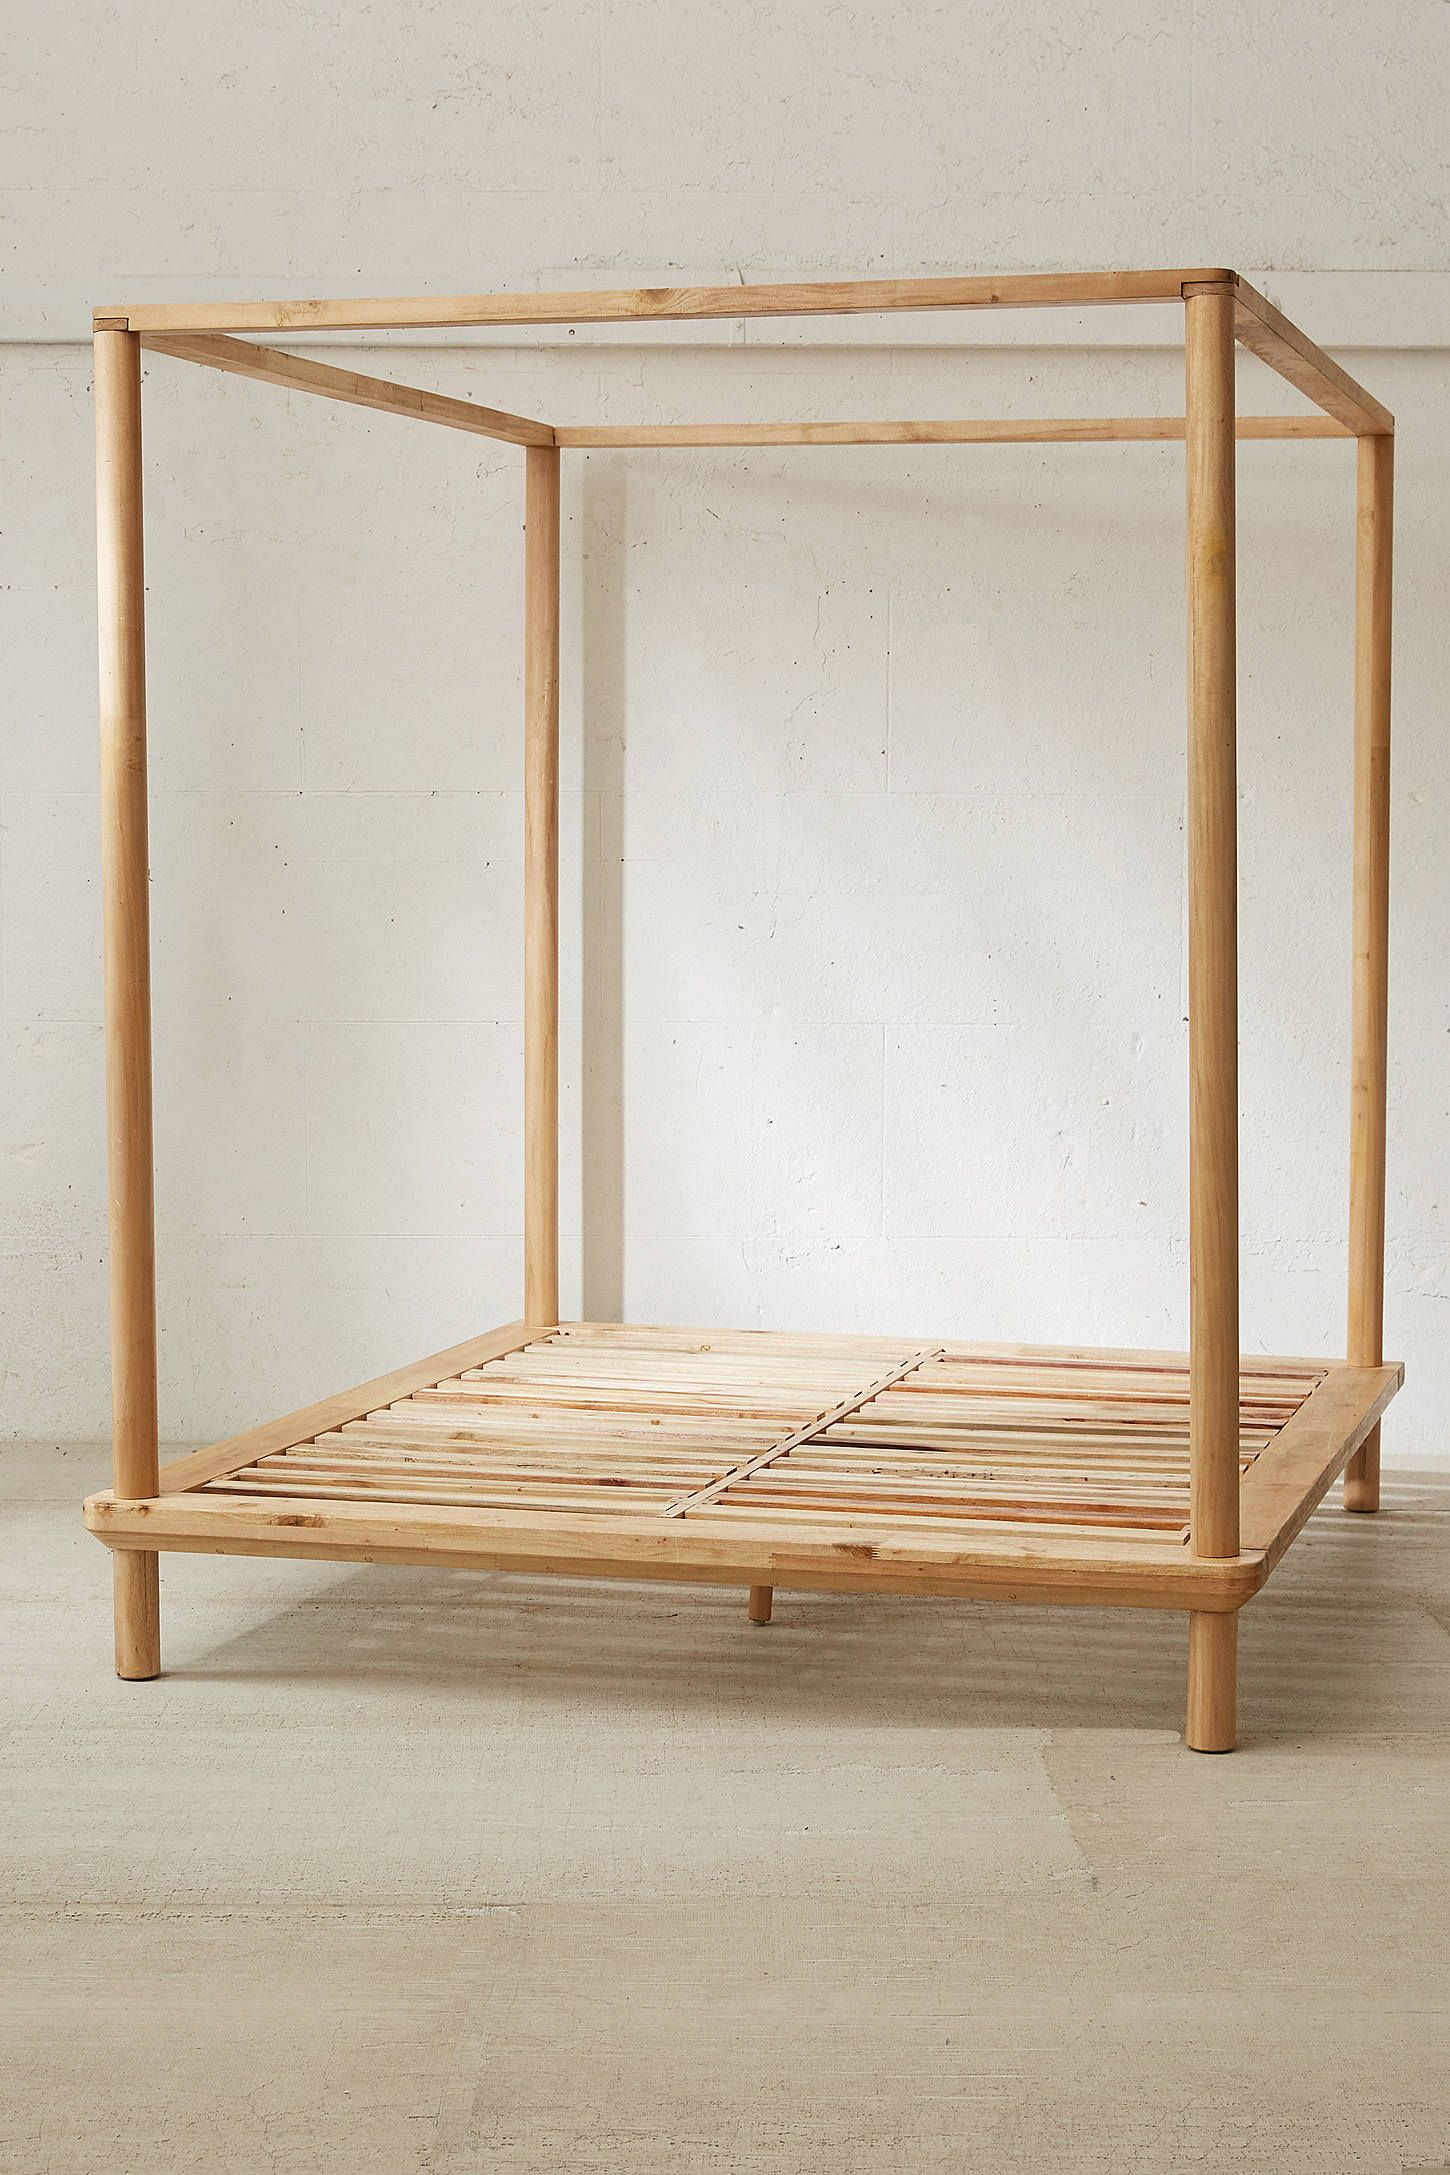 - Eva Wooden Canopy Bed In 2020 Wooden Canopy Bed, Canopy Bed